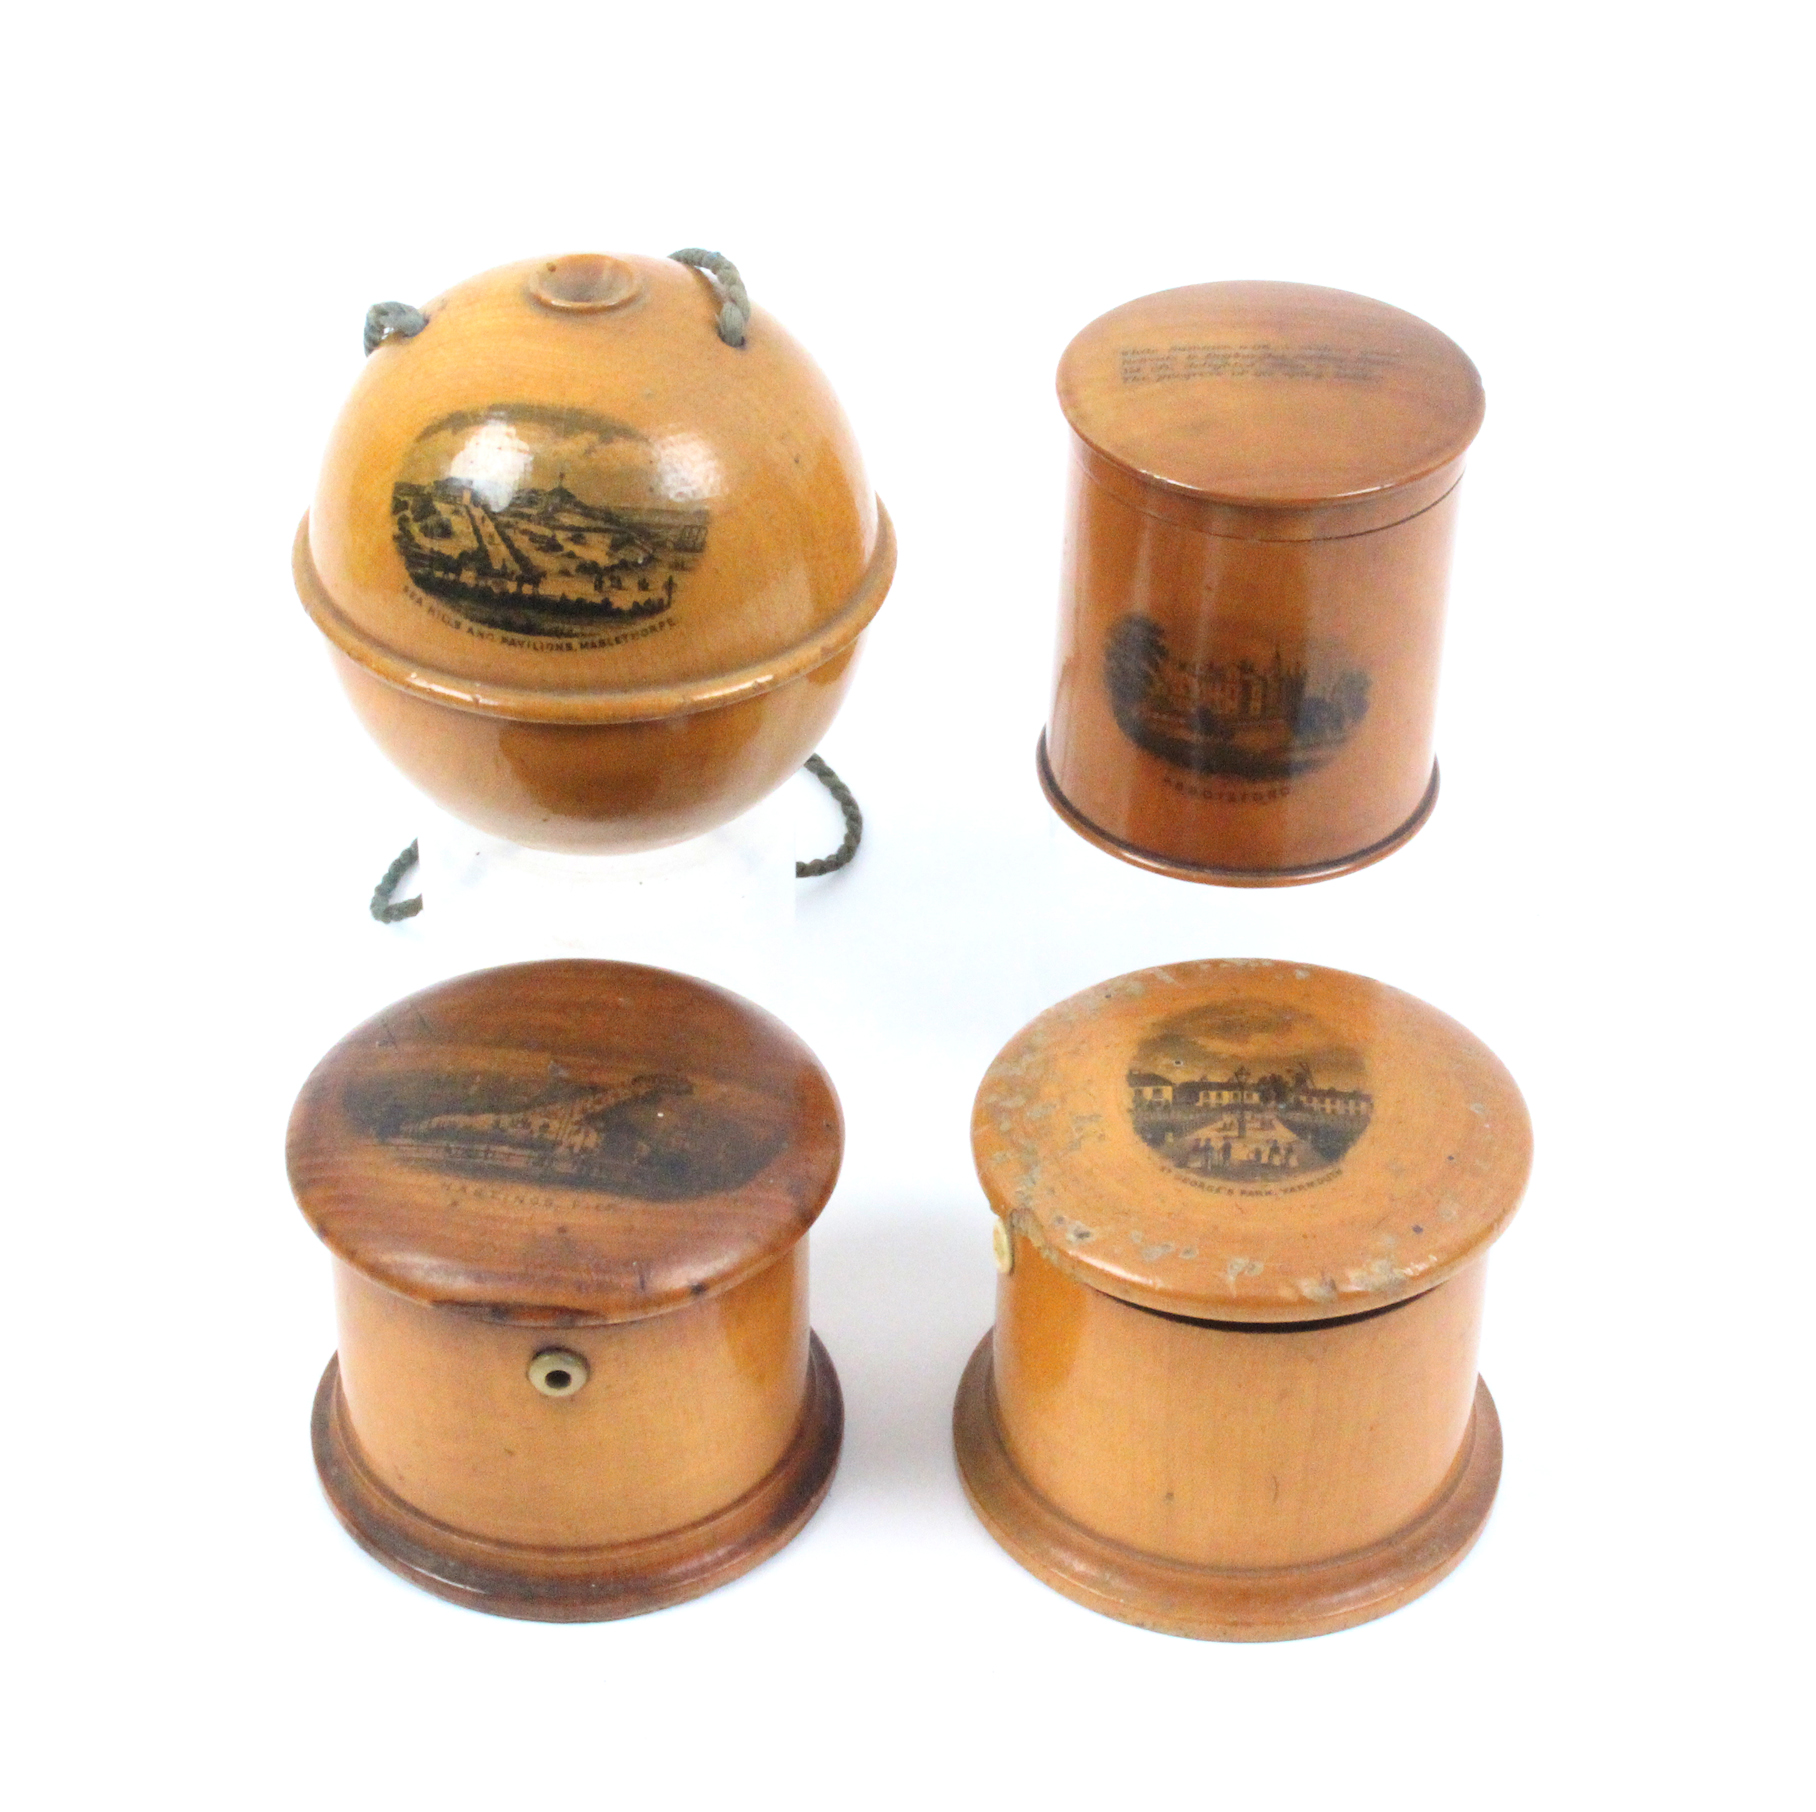 Mauchline ware - sewing - four pieces comprising a wool ball (Sea Hills And Pavilions, Mablethorpe),